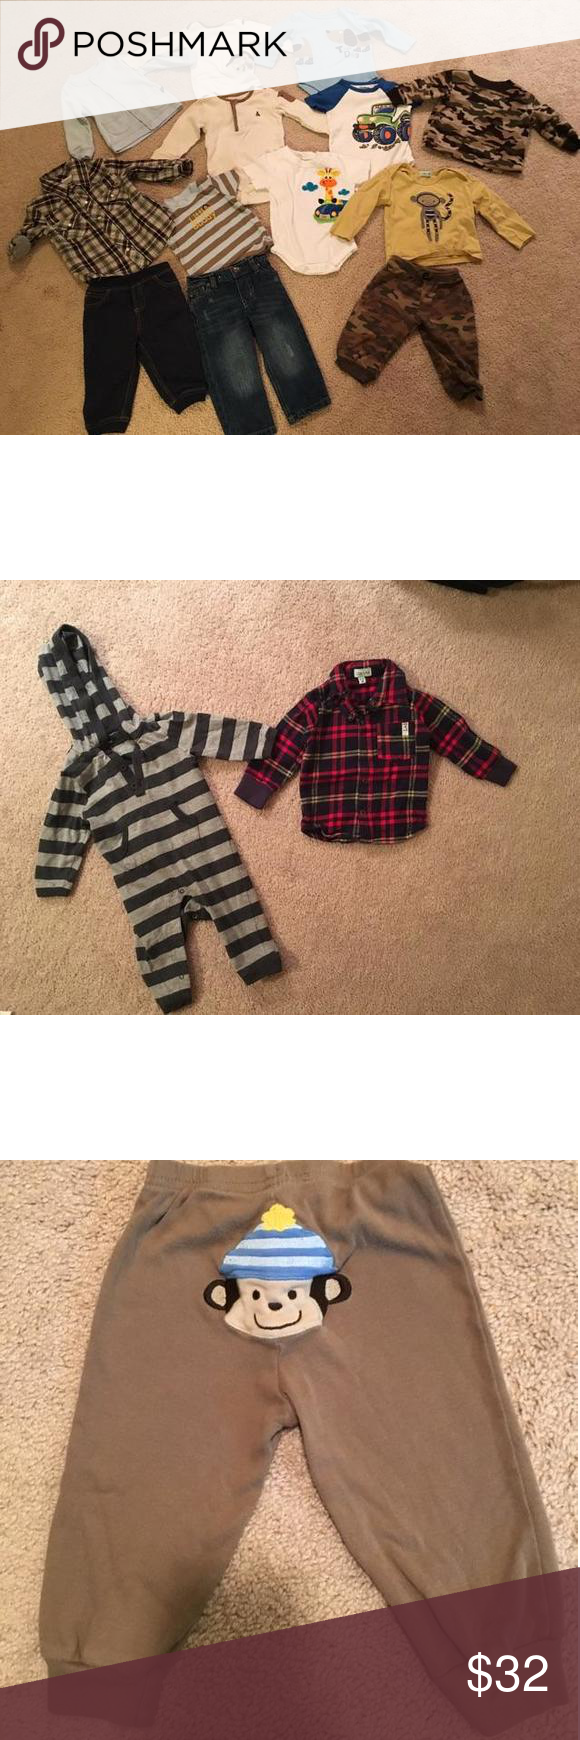 6-9 Month Clothing Bundle! 4 pair of pants (2 jeans, 2 sweatpants), 1 Camo fleece sweatshirt, 1 button up cotton sweater, 1 plaid button up dress shirt, 7 other tops or onesies as seen in picture.  All items in great-excellent condition. Some new without tags but washed & hung dried. (pair of jeans, plaid dress top)  Third picture has plaid shirt & cotton pant onesie both size 6-12 months. New without tags but washed and hung dried. Shirts & Tops